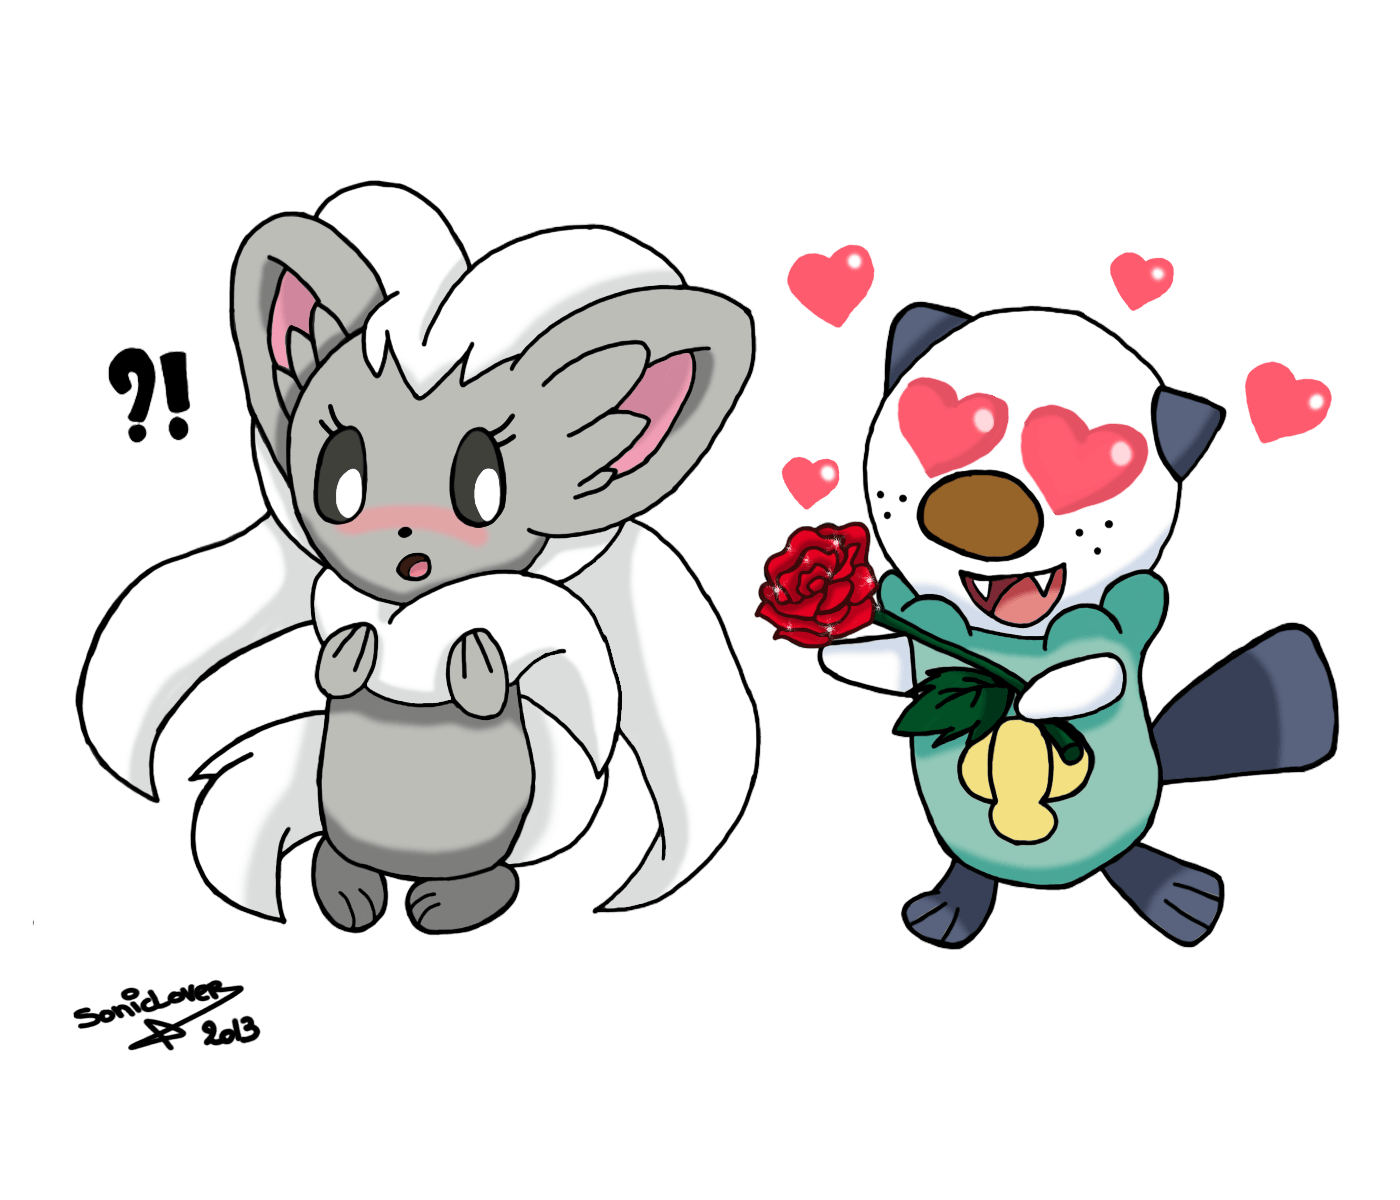 Oshawott Loves Cinccino by XxSonicLoverxX on DeviantArt